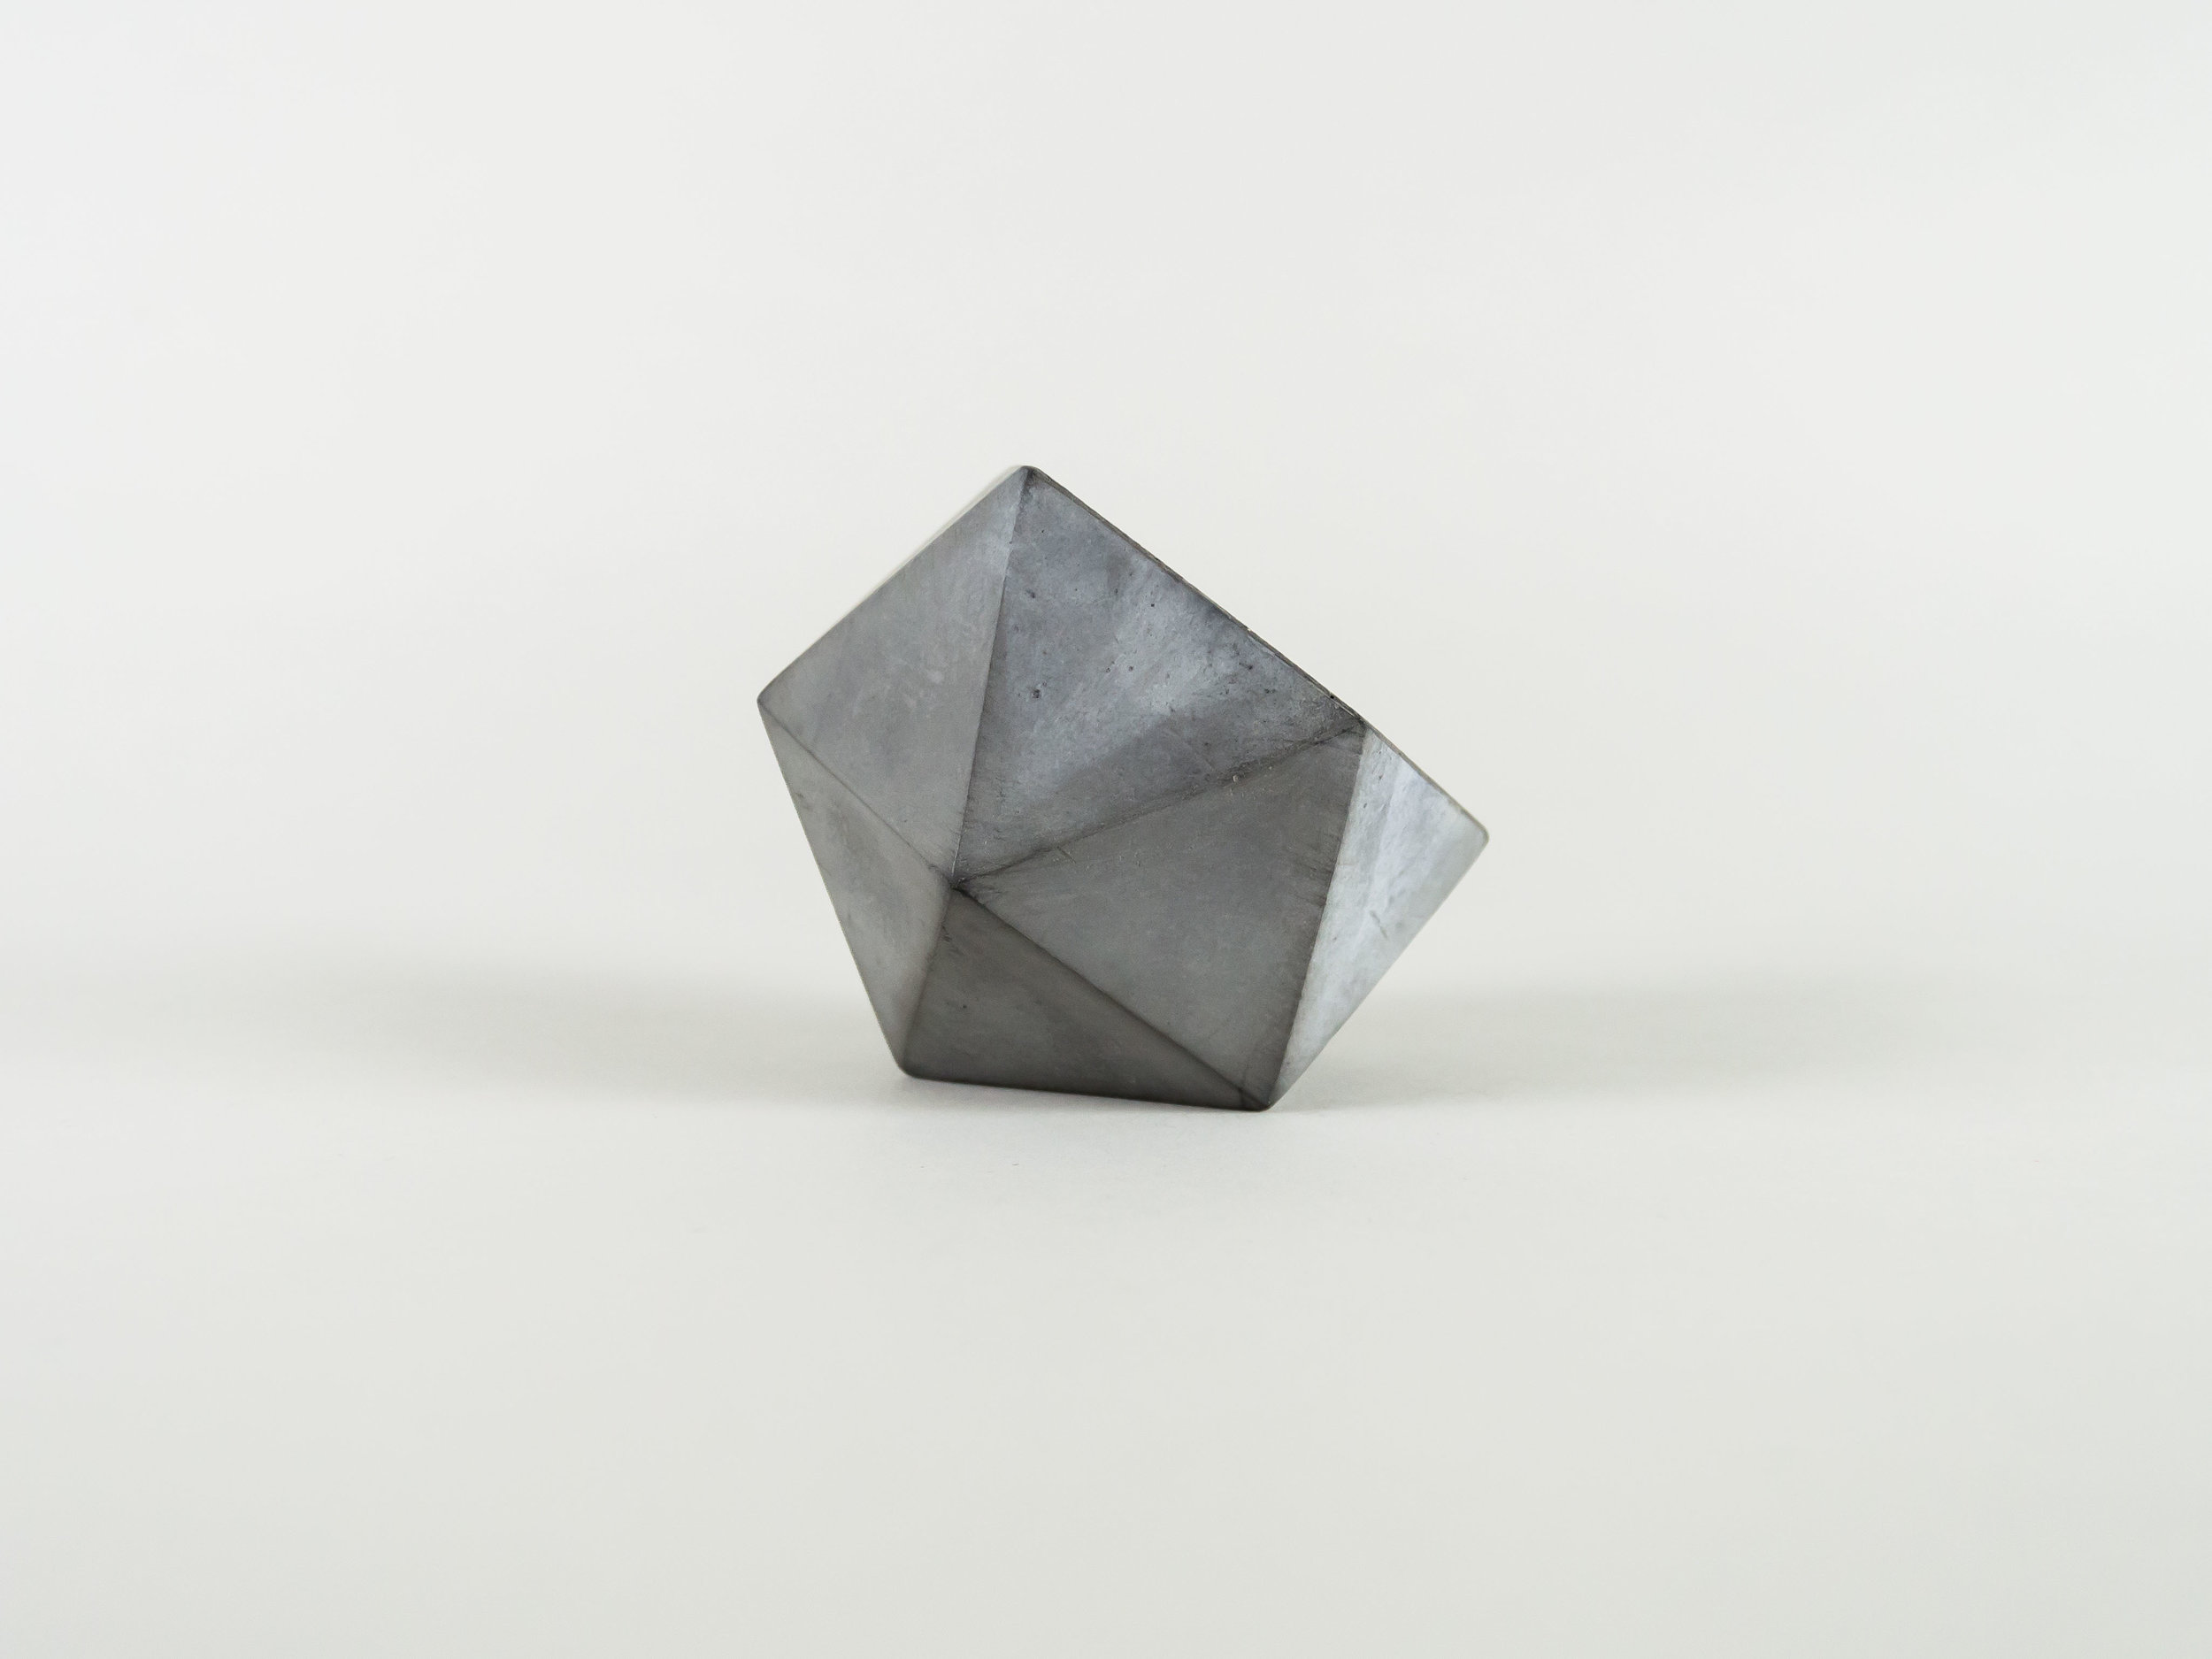 Modern Dark Grey GeometricConcrete Succulent Planter by The Savvy Heart